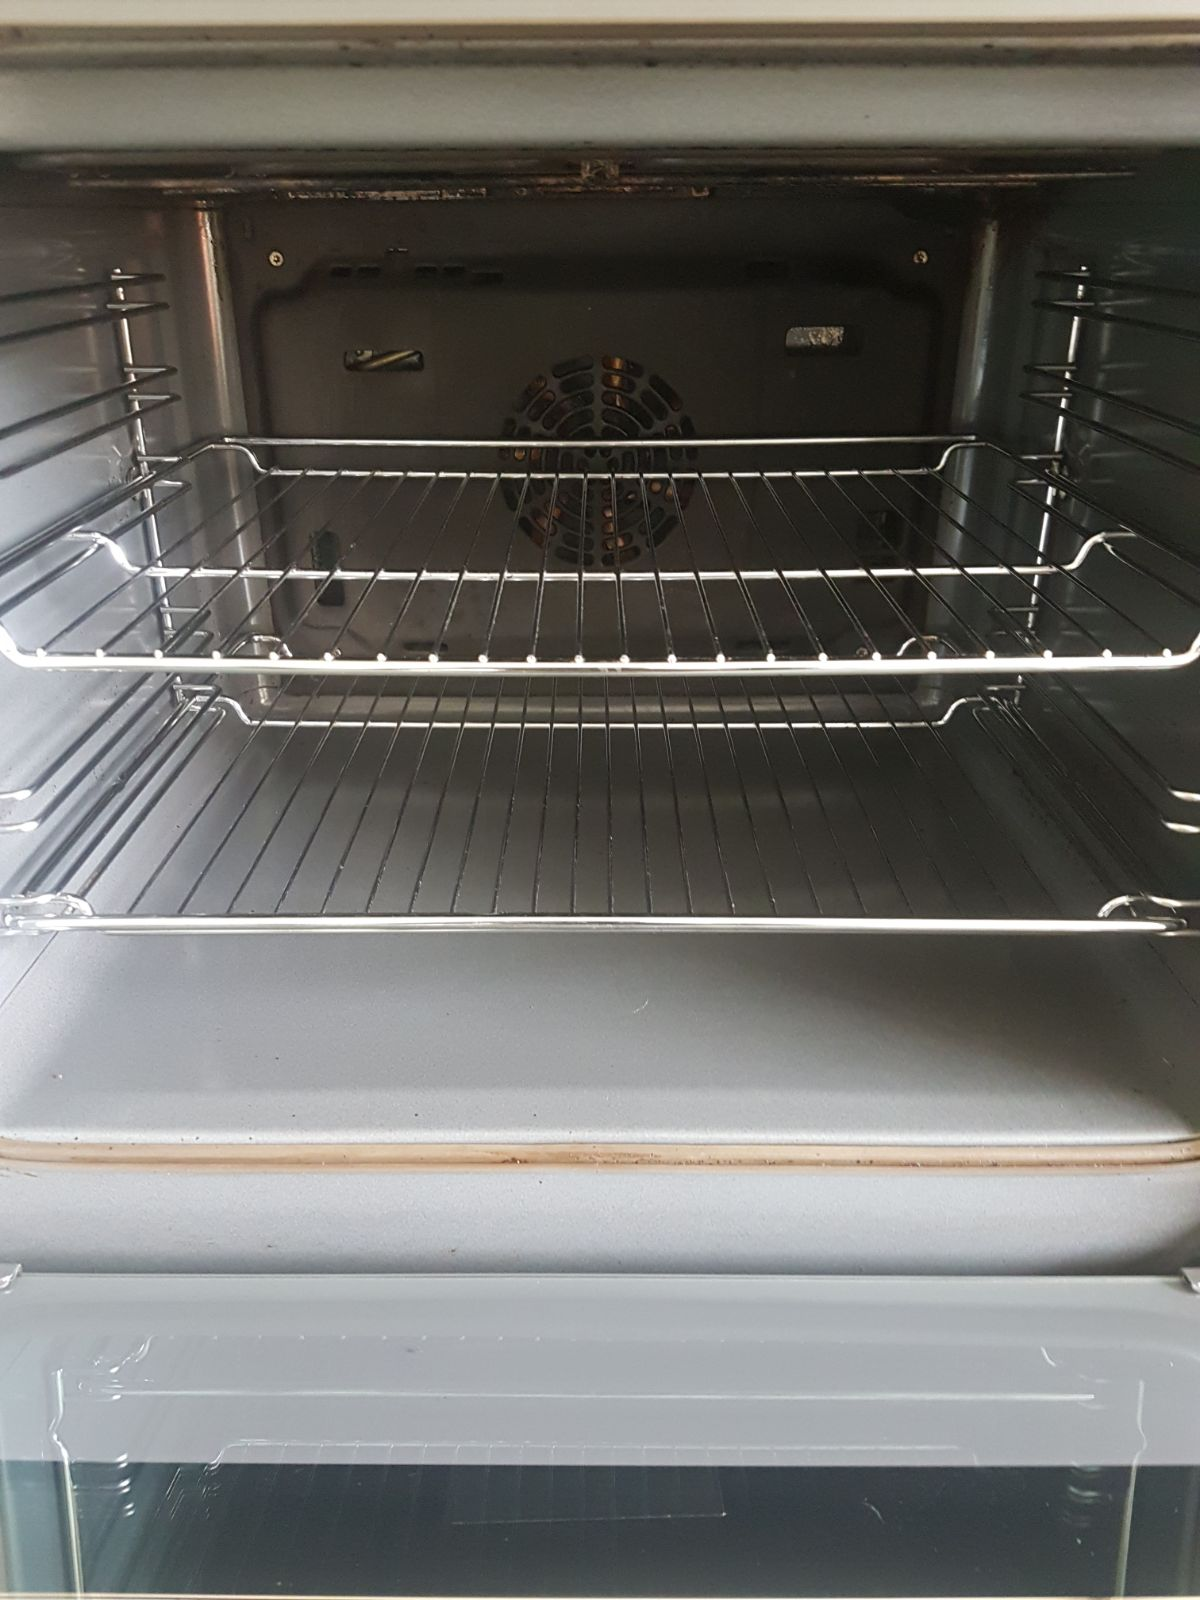 Oven cleaned by Ultra Clean Ovens